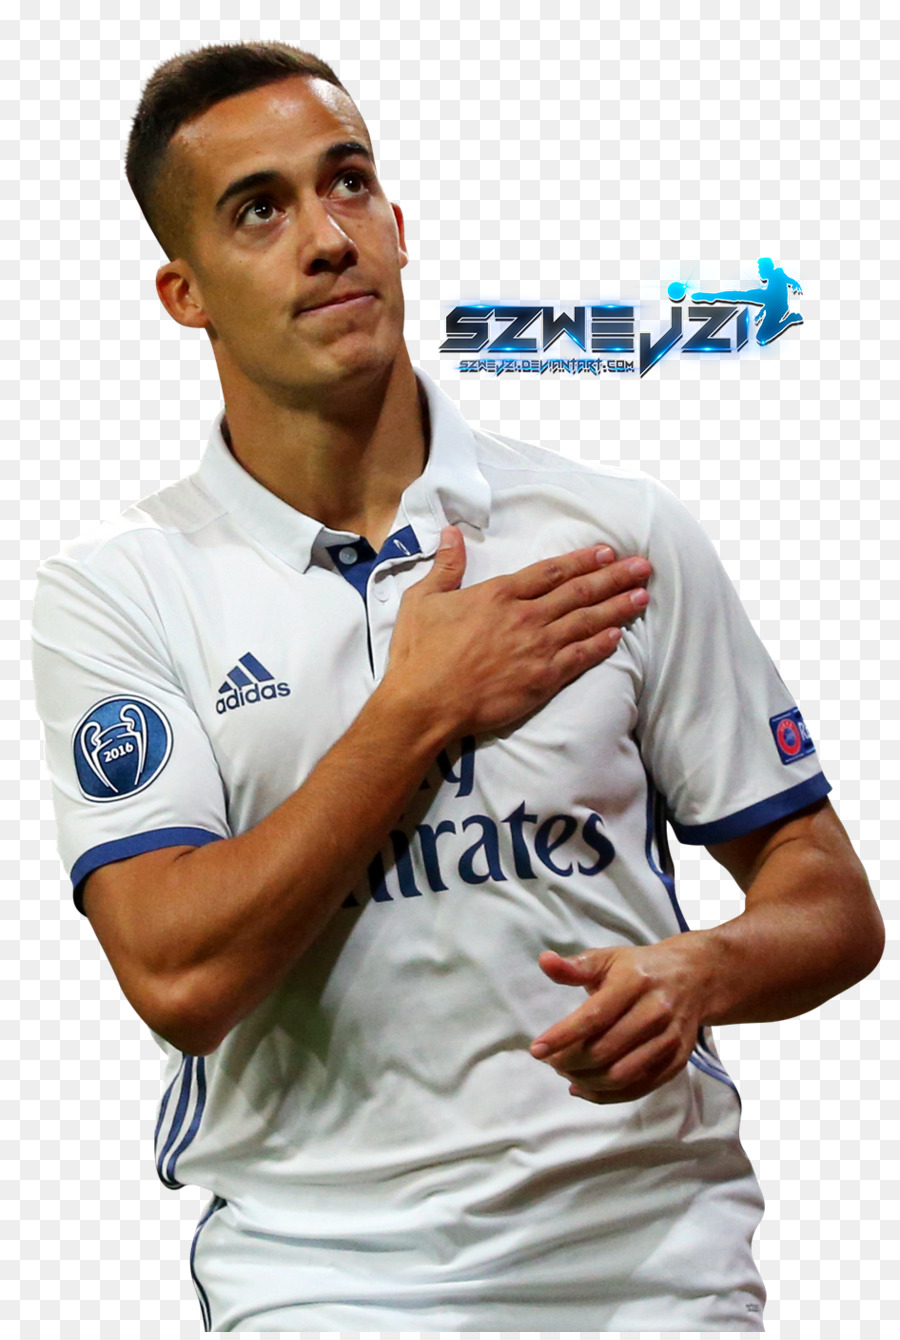 buy online d5233 9a94b Cristiano Ronaldo png download - 946*1400 - Free Transparent ...